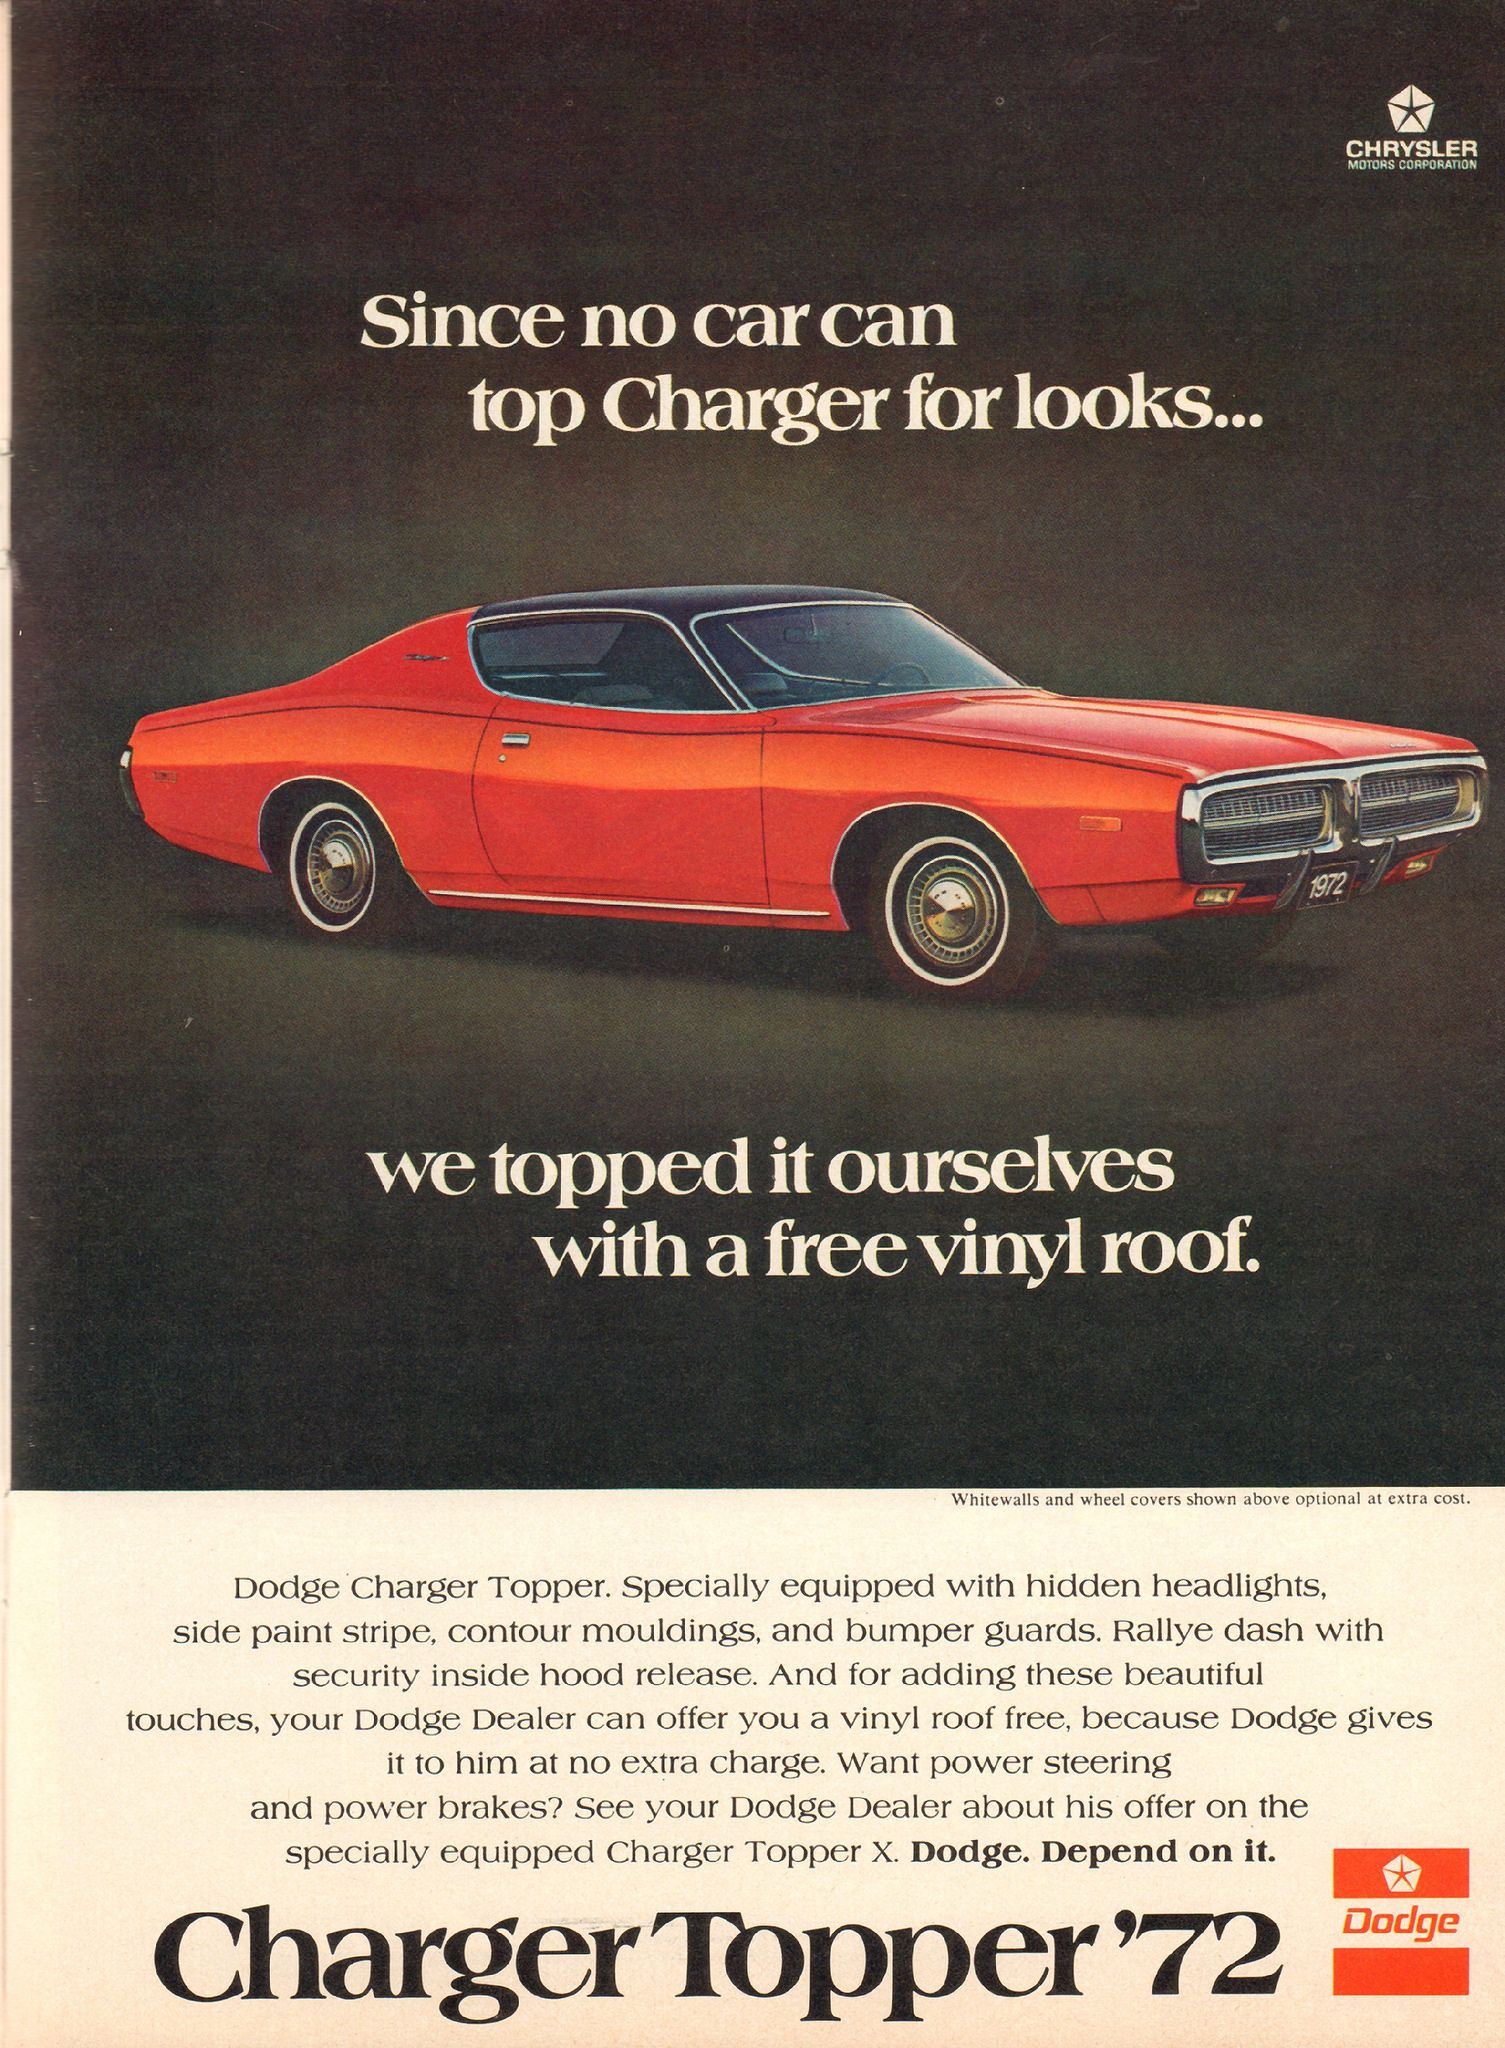 1972 Dodge Charger Topper Advertisement Hot Rod Magazine